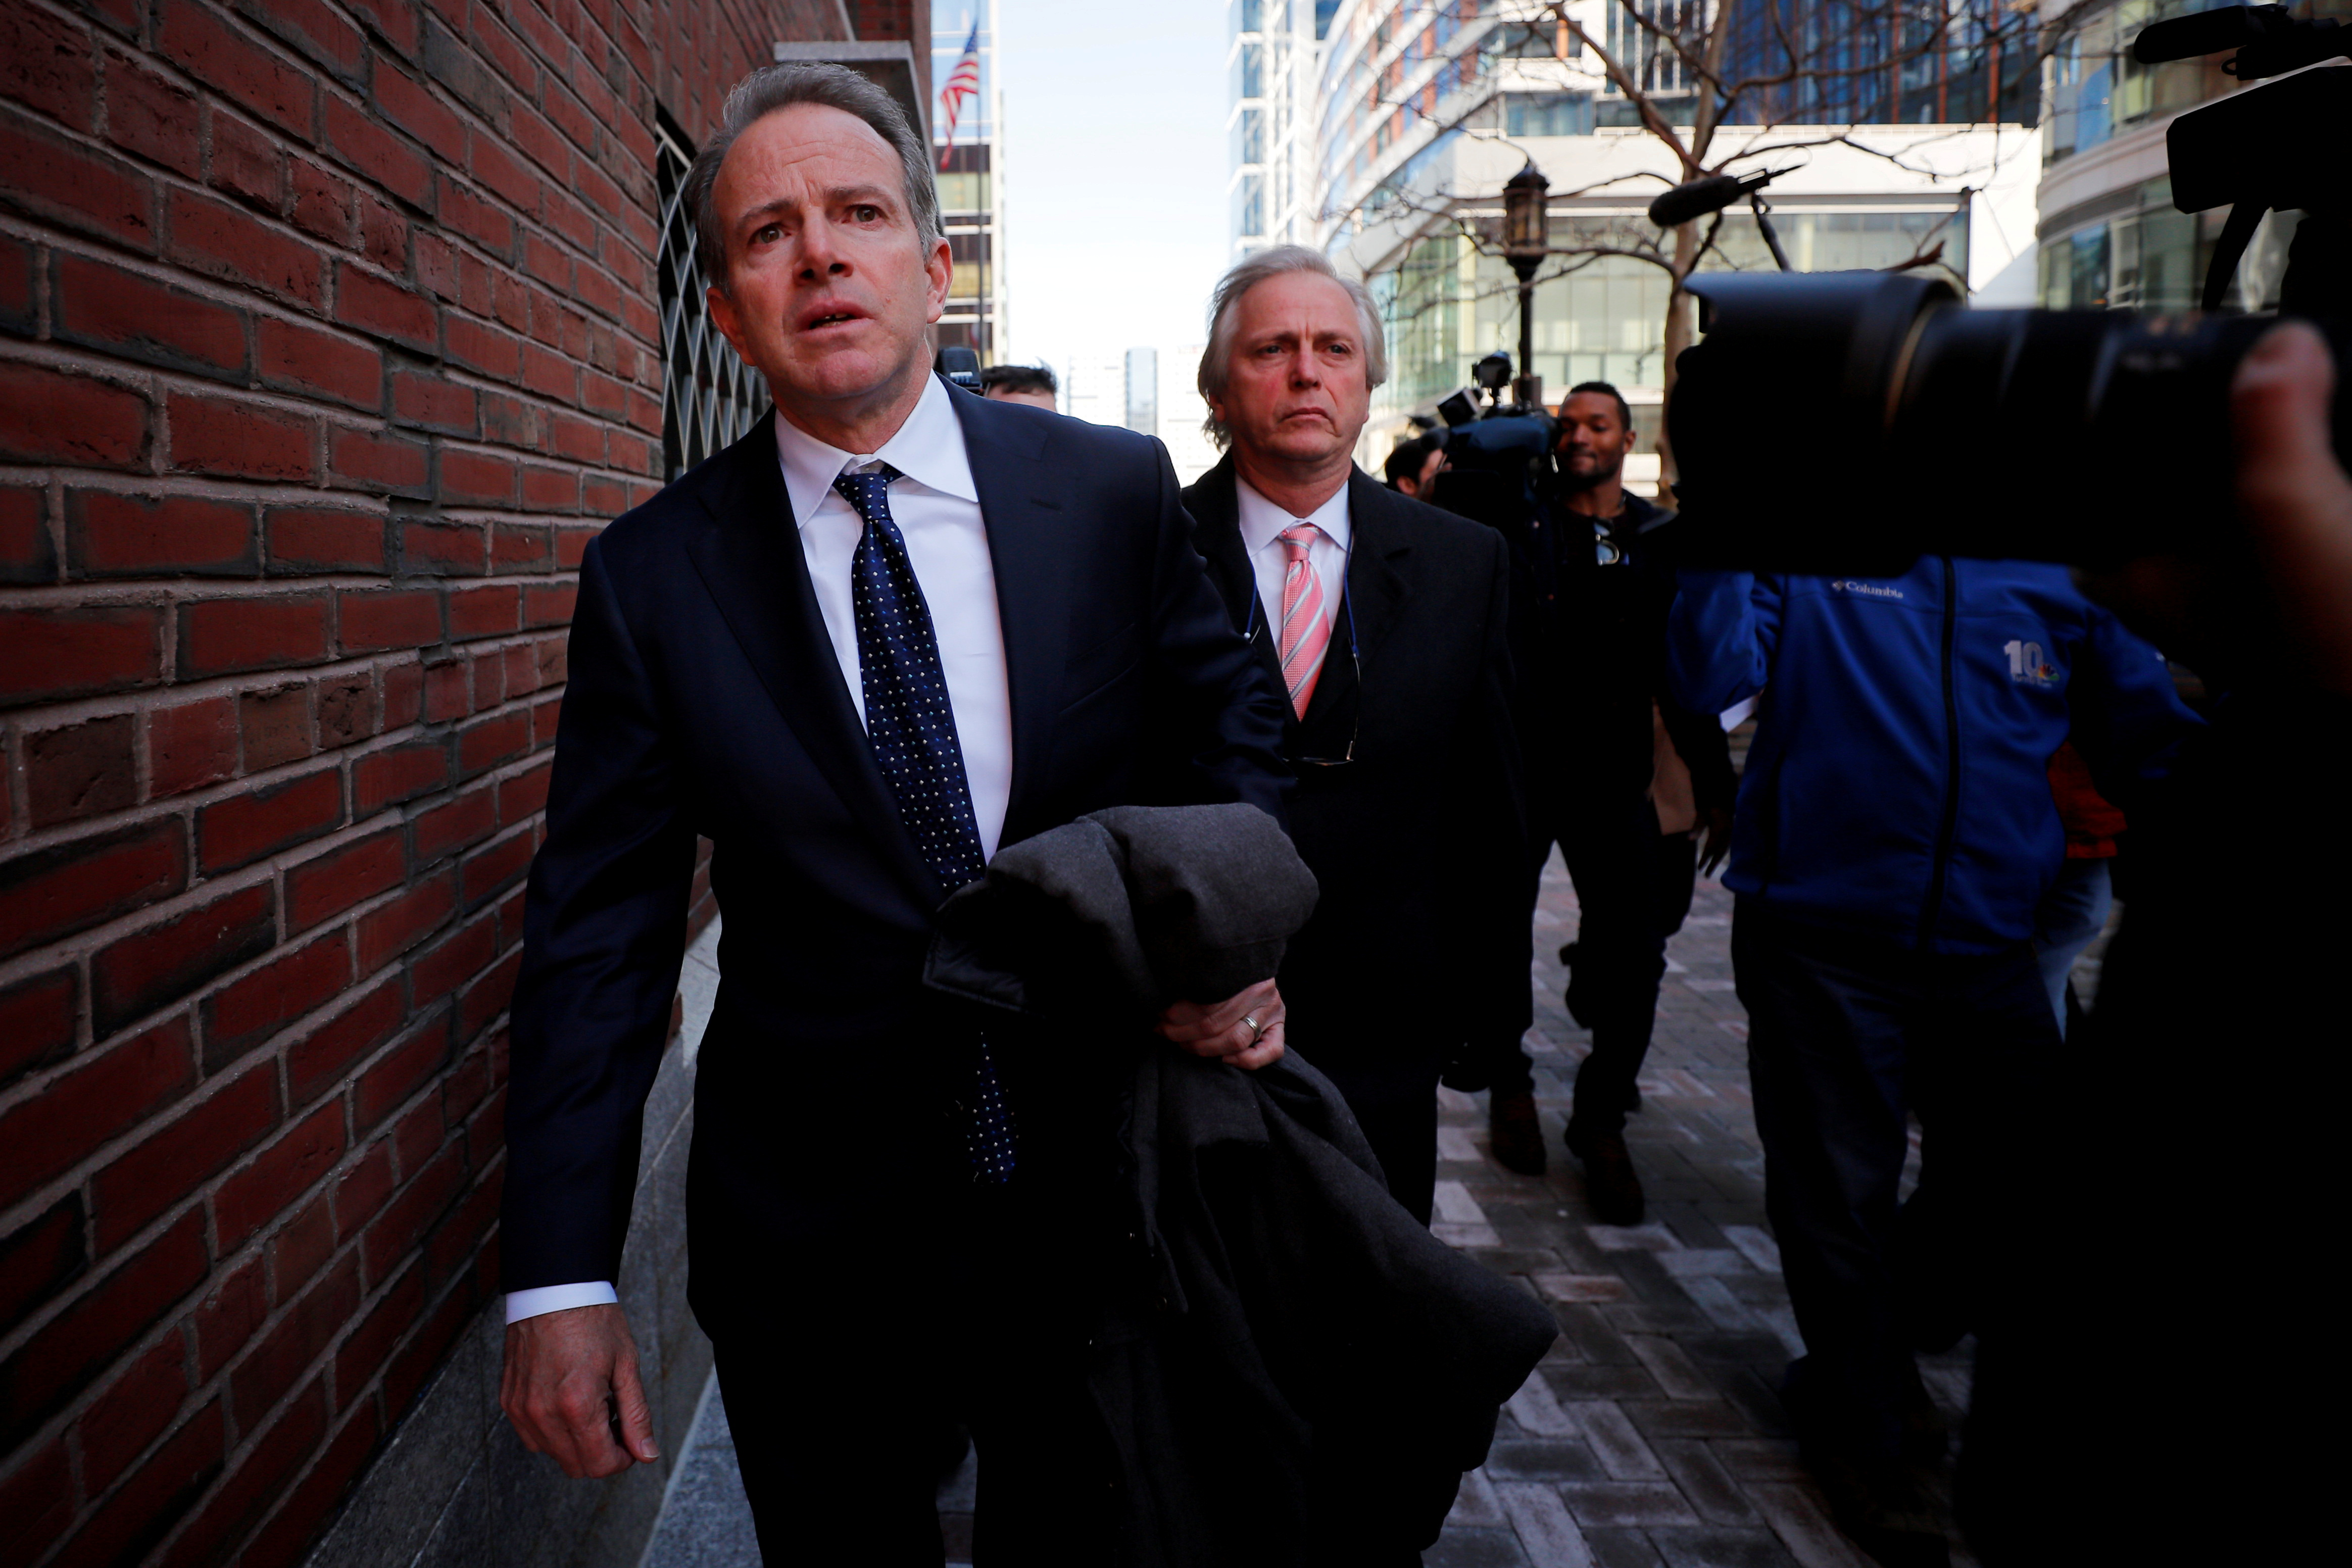 Gordon Ernst, Georgetown University's former head tennis coach facing charges in a nationwide college admissions cheating scheme, leaves the federal courthouse in Boston, Massachusetts, U.S., March 25, 2019.   REUTERS/Brian Snyder/File Photo